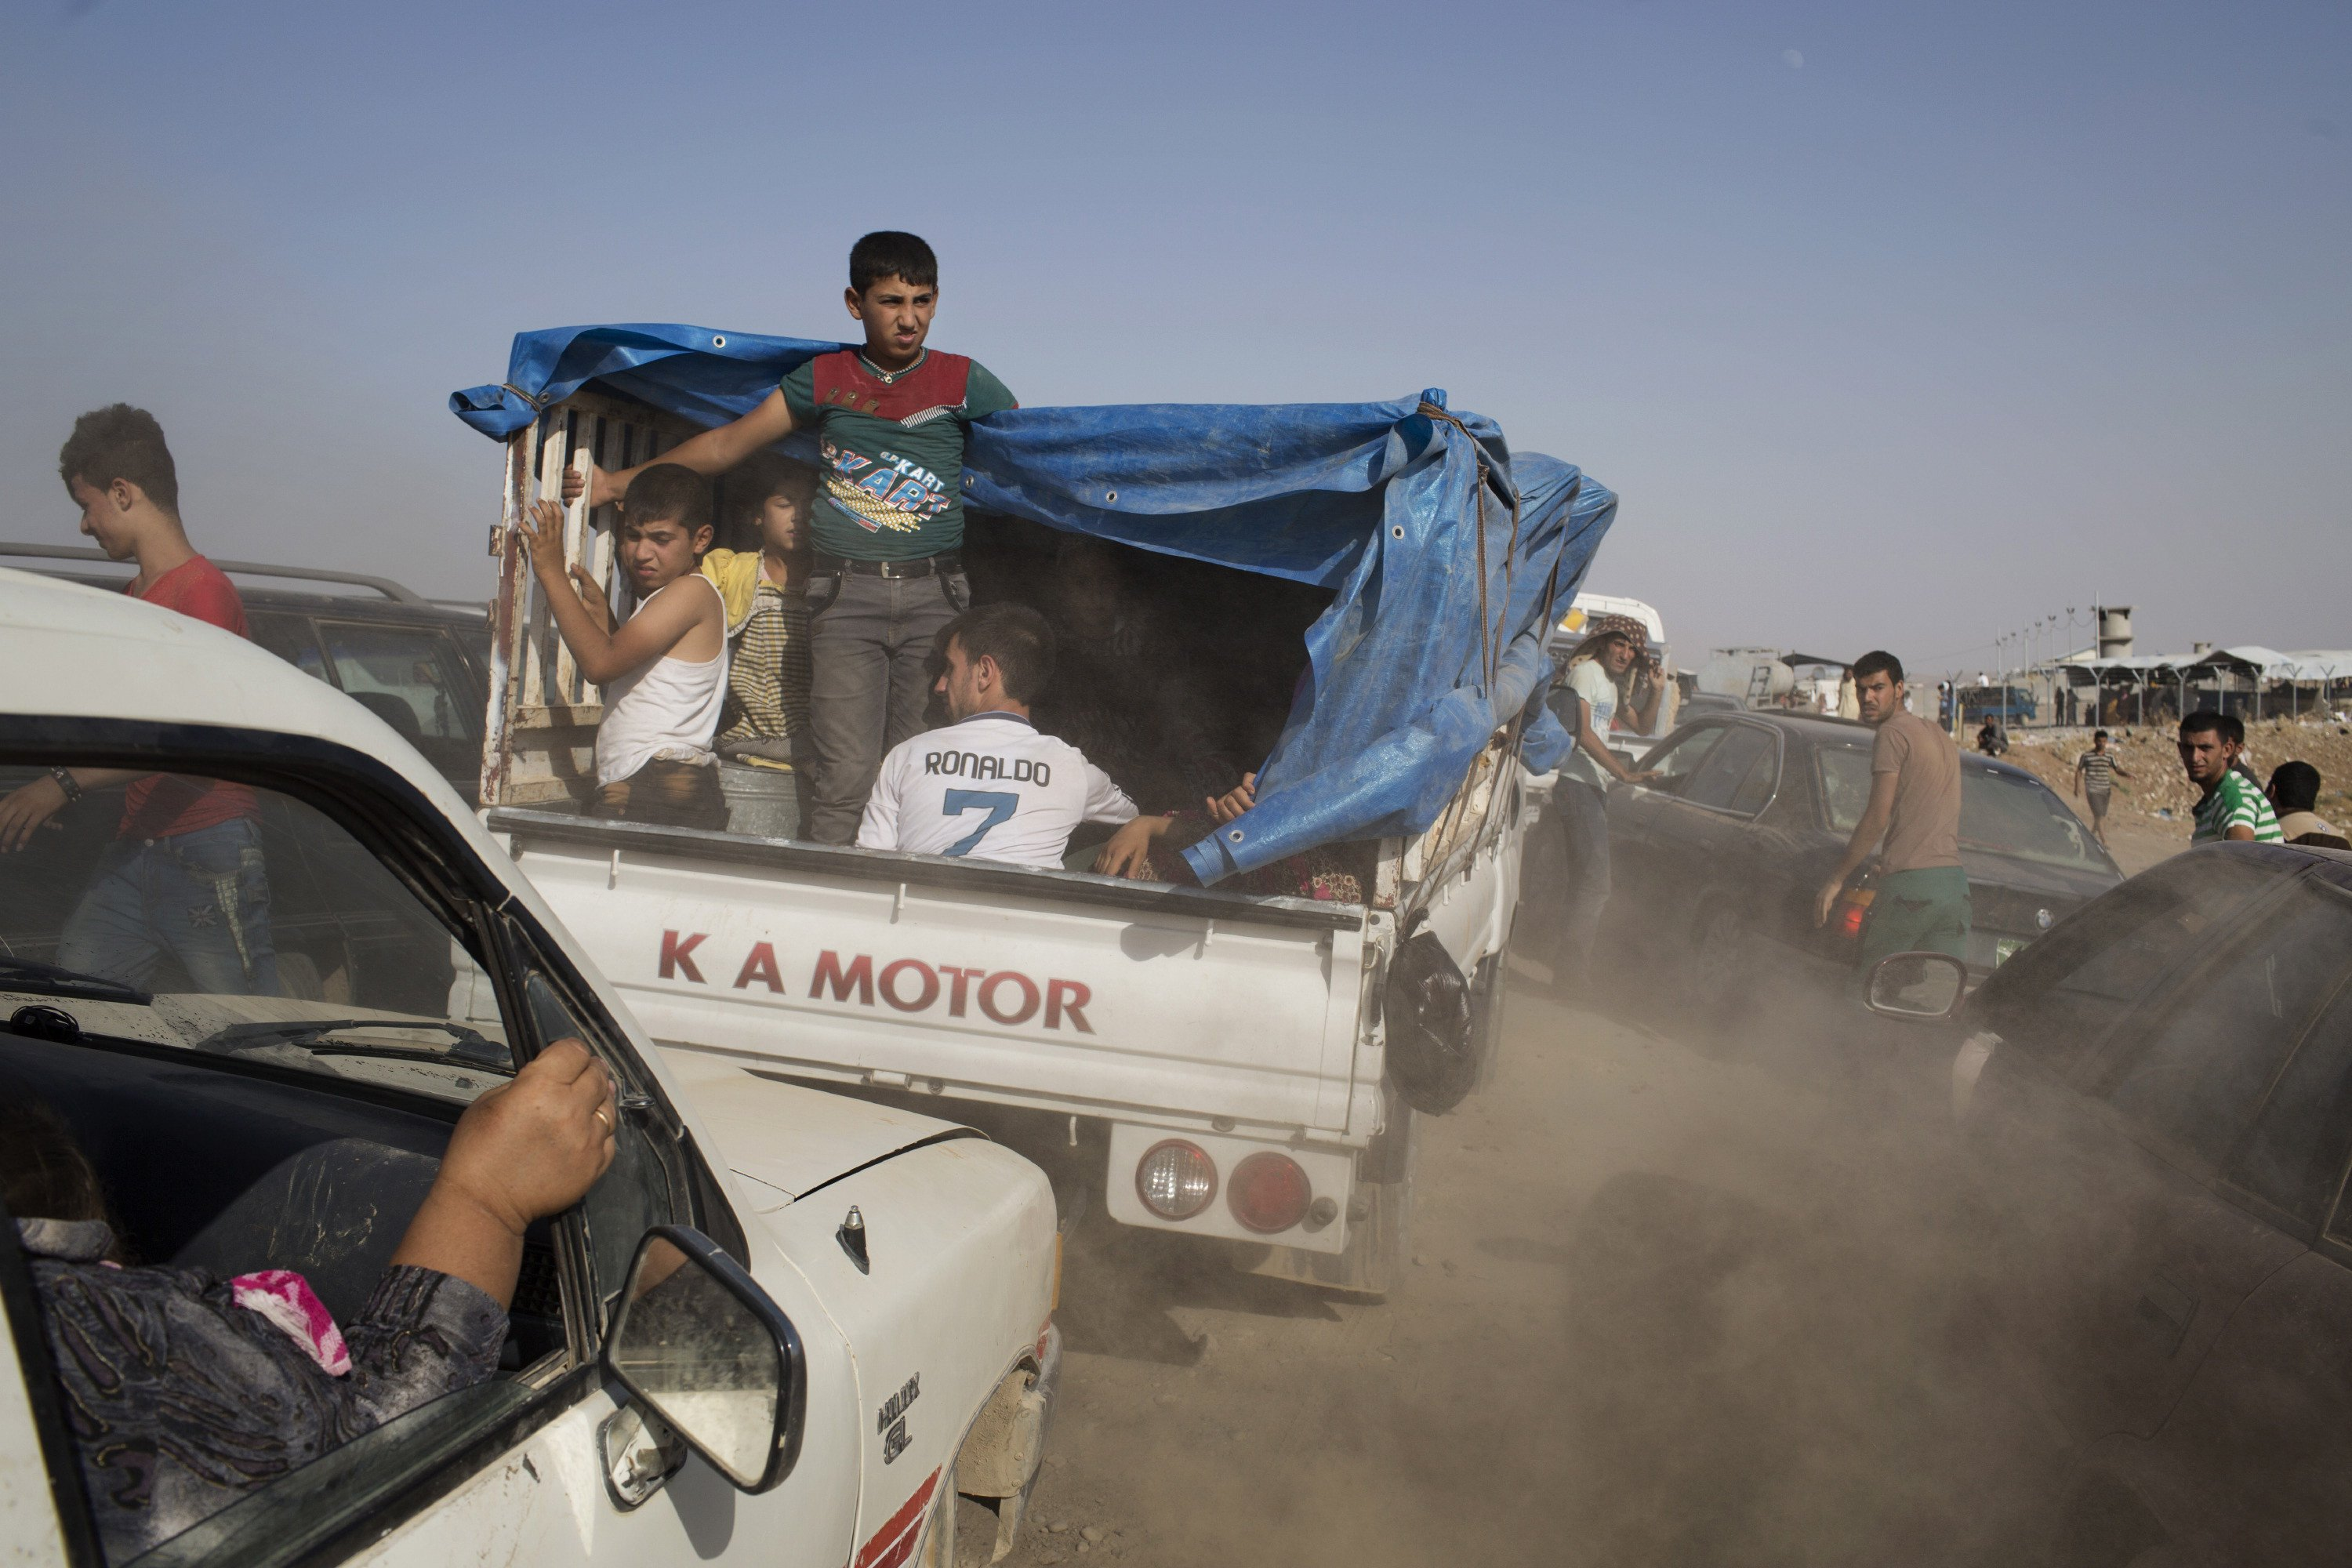 Iraqis arrive at a Kurdish peshmerga controlled checkpoint between Irbil and Mosul after fleeing in fear of ISIS attacks, Aug. 6, 2014.